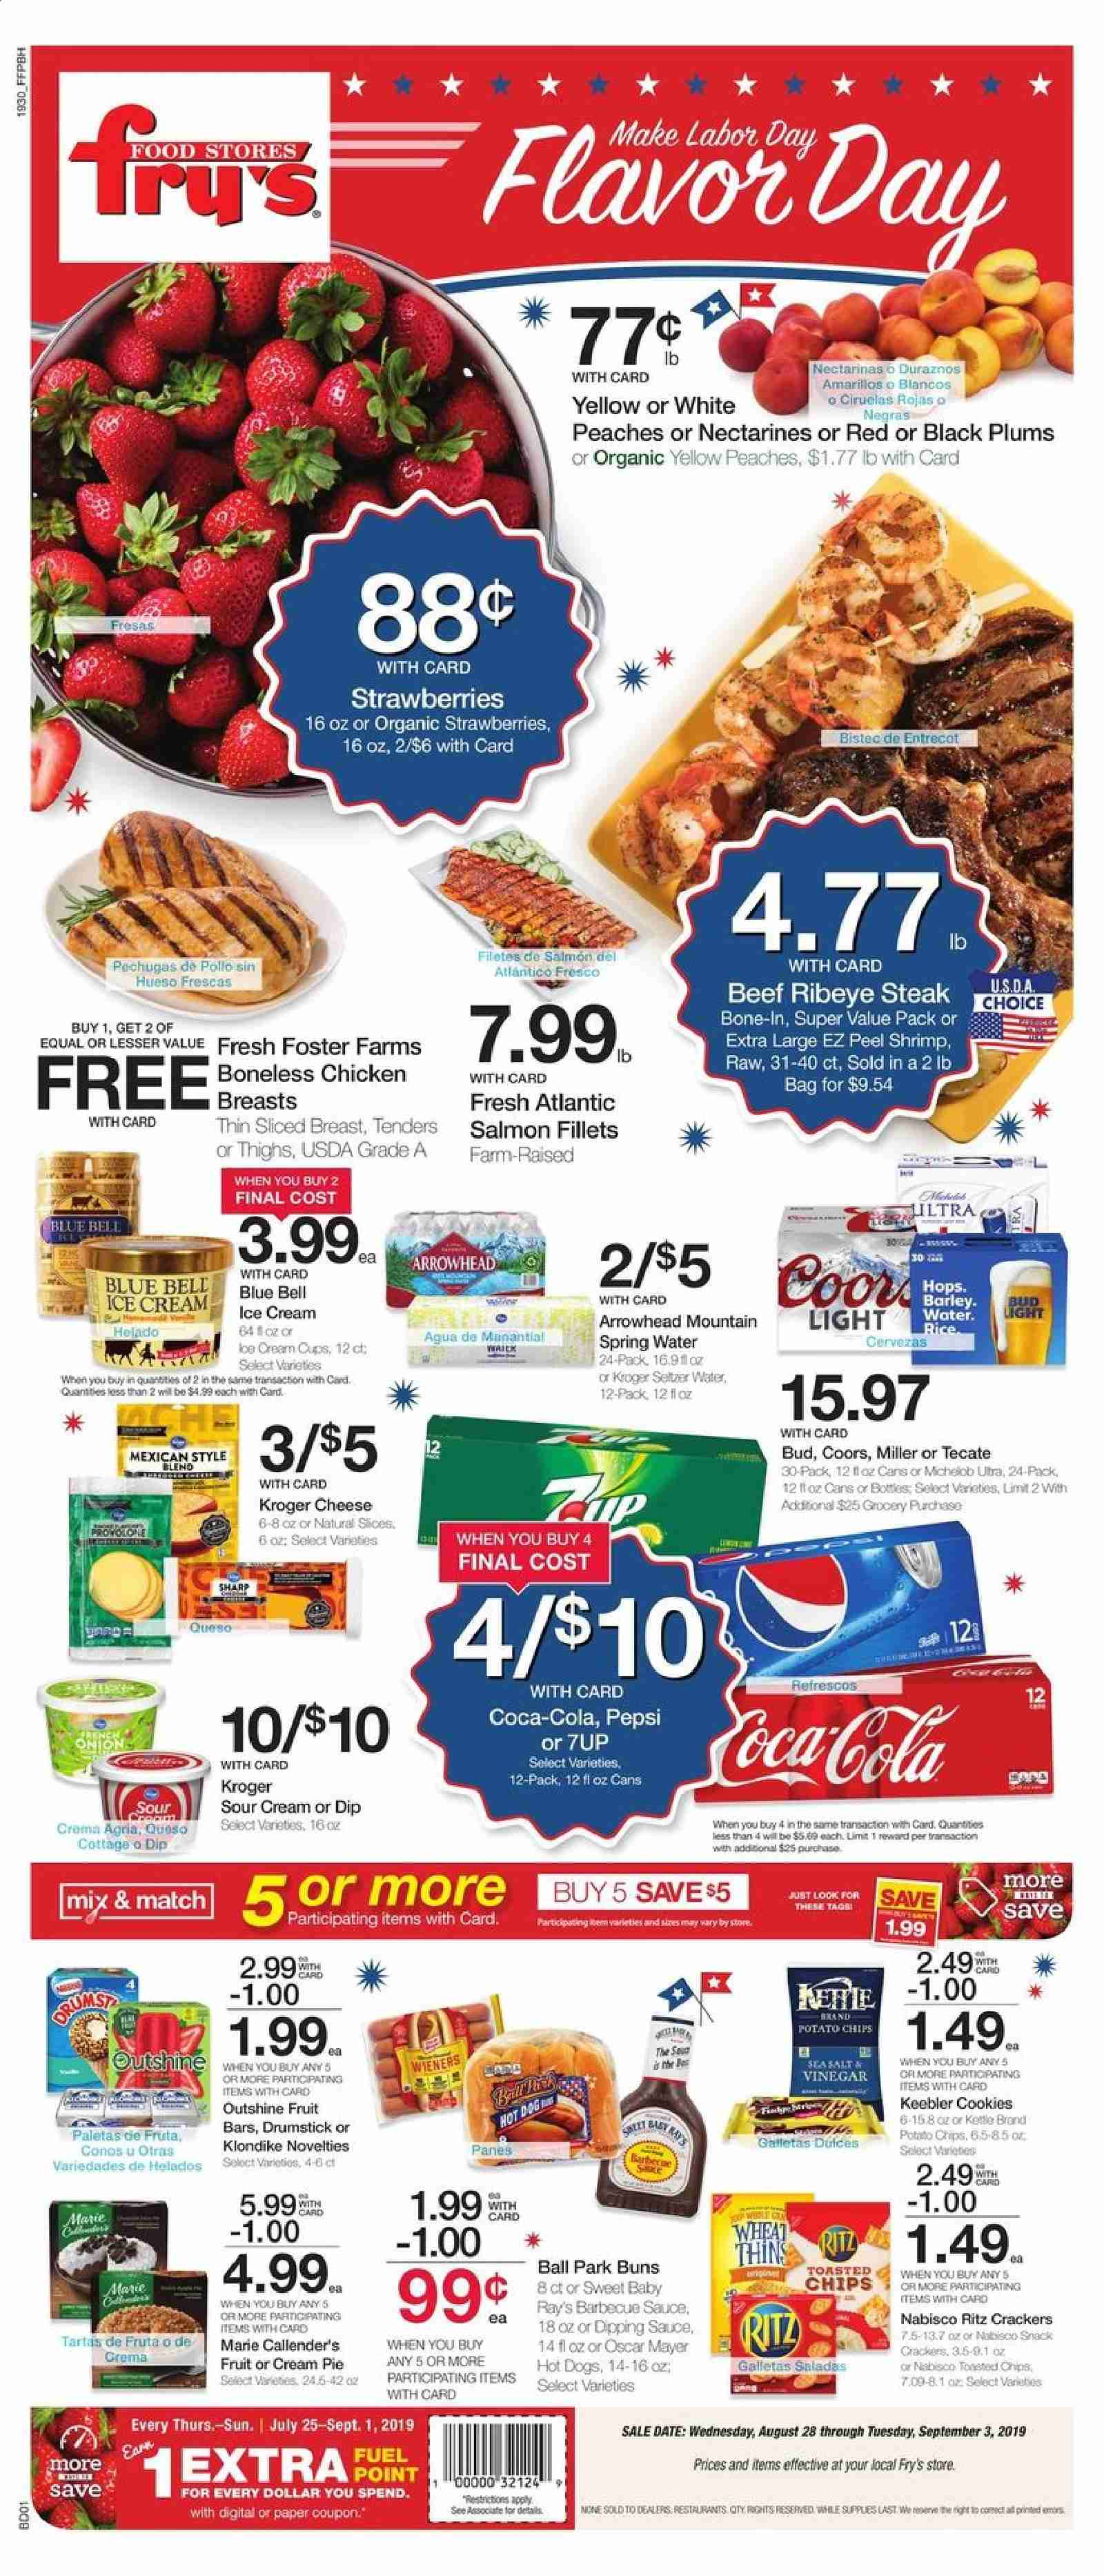 Fry's Flyer - 08.28.2019 - 09.03.2019 - Sales products - Bud Light, Coors, Michelob, onion, nectarines, strawberries, plums, peache, pie, cream pie, salmon, shrimps, hot dog, cheese, sour cream, sauce, ice cream, cookies, crackers, potato chips, chips, snack, barley, rice, barbecue sauce, vinegar, Coca-Cola, Pepsi, seltzer, spring water, water, chicken, beef meat, steak, Sharp, paper, kettle, hot dogs. Page 1.